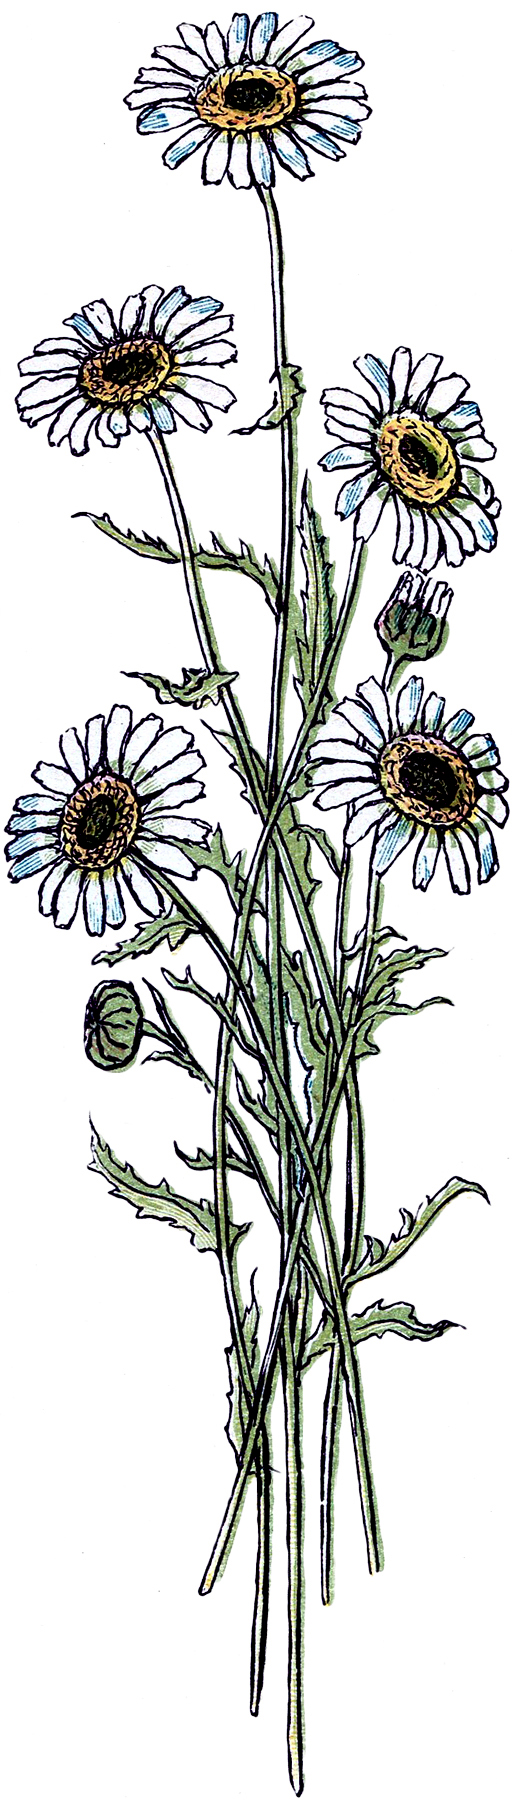 Pretty Vintage Daisy Drawing! - The Graphics Fairy